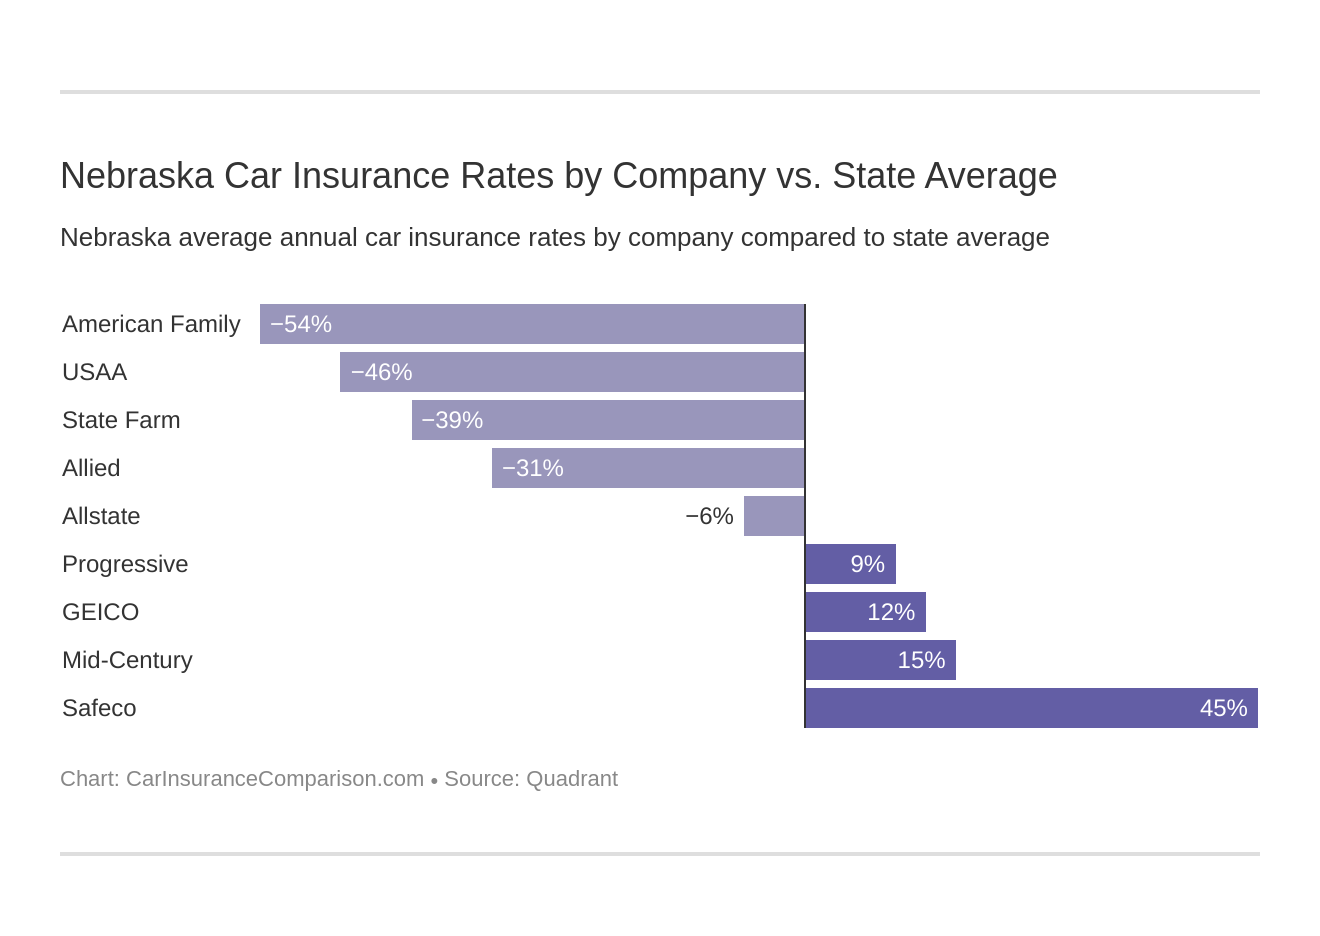 Nebraska Car Insurance Rates by Company vs. State Average